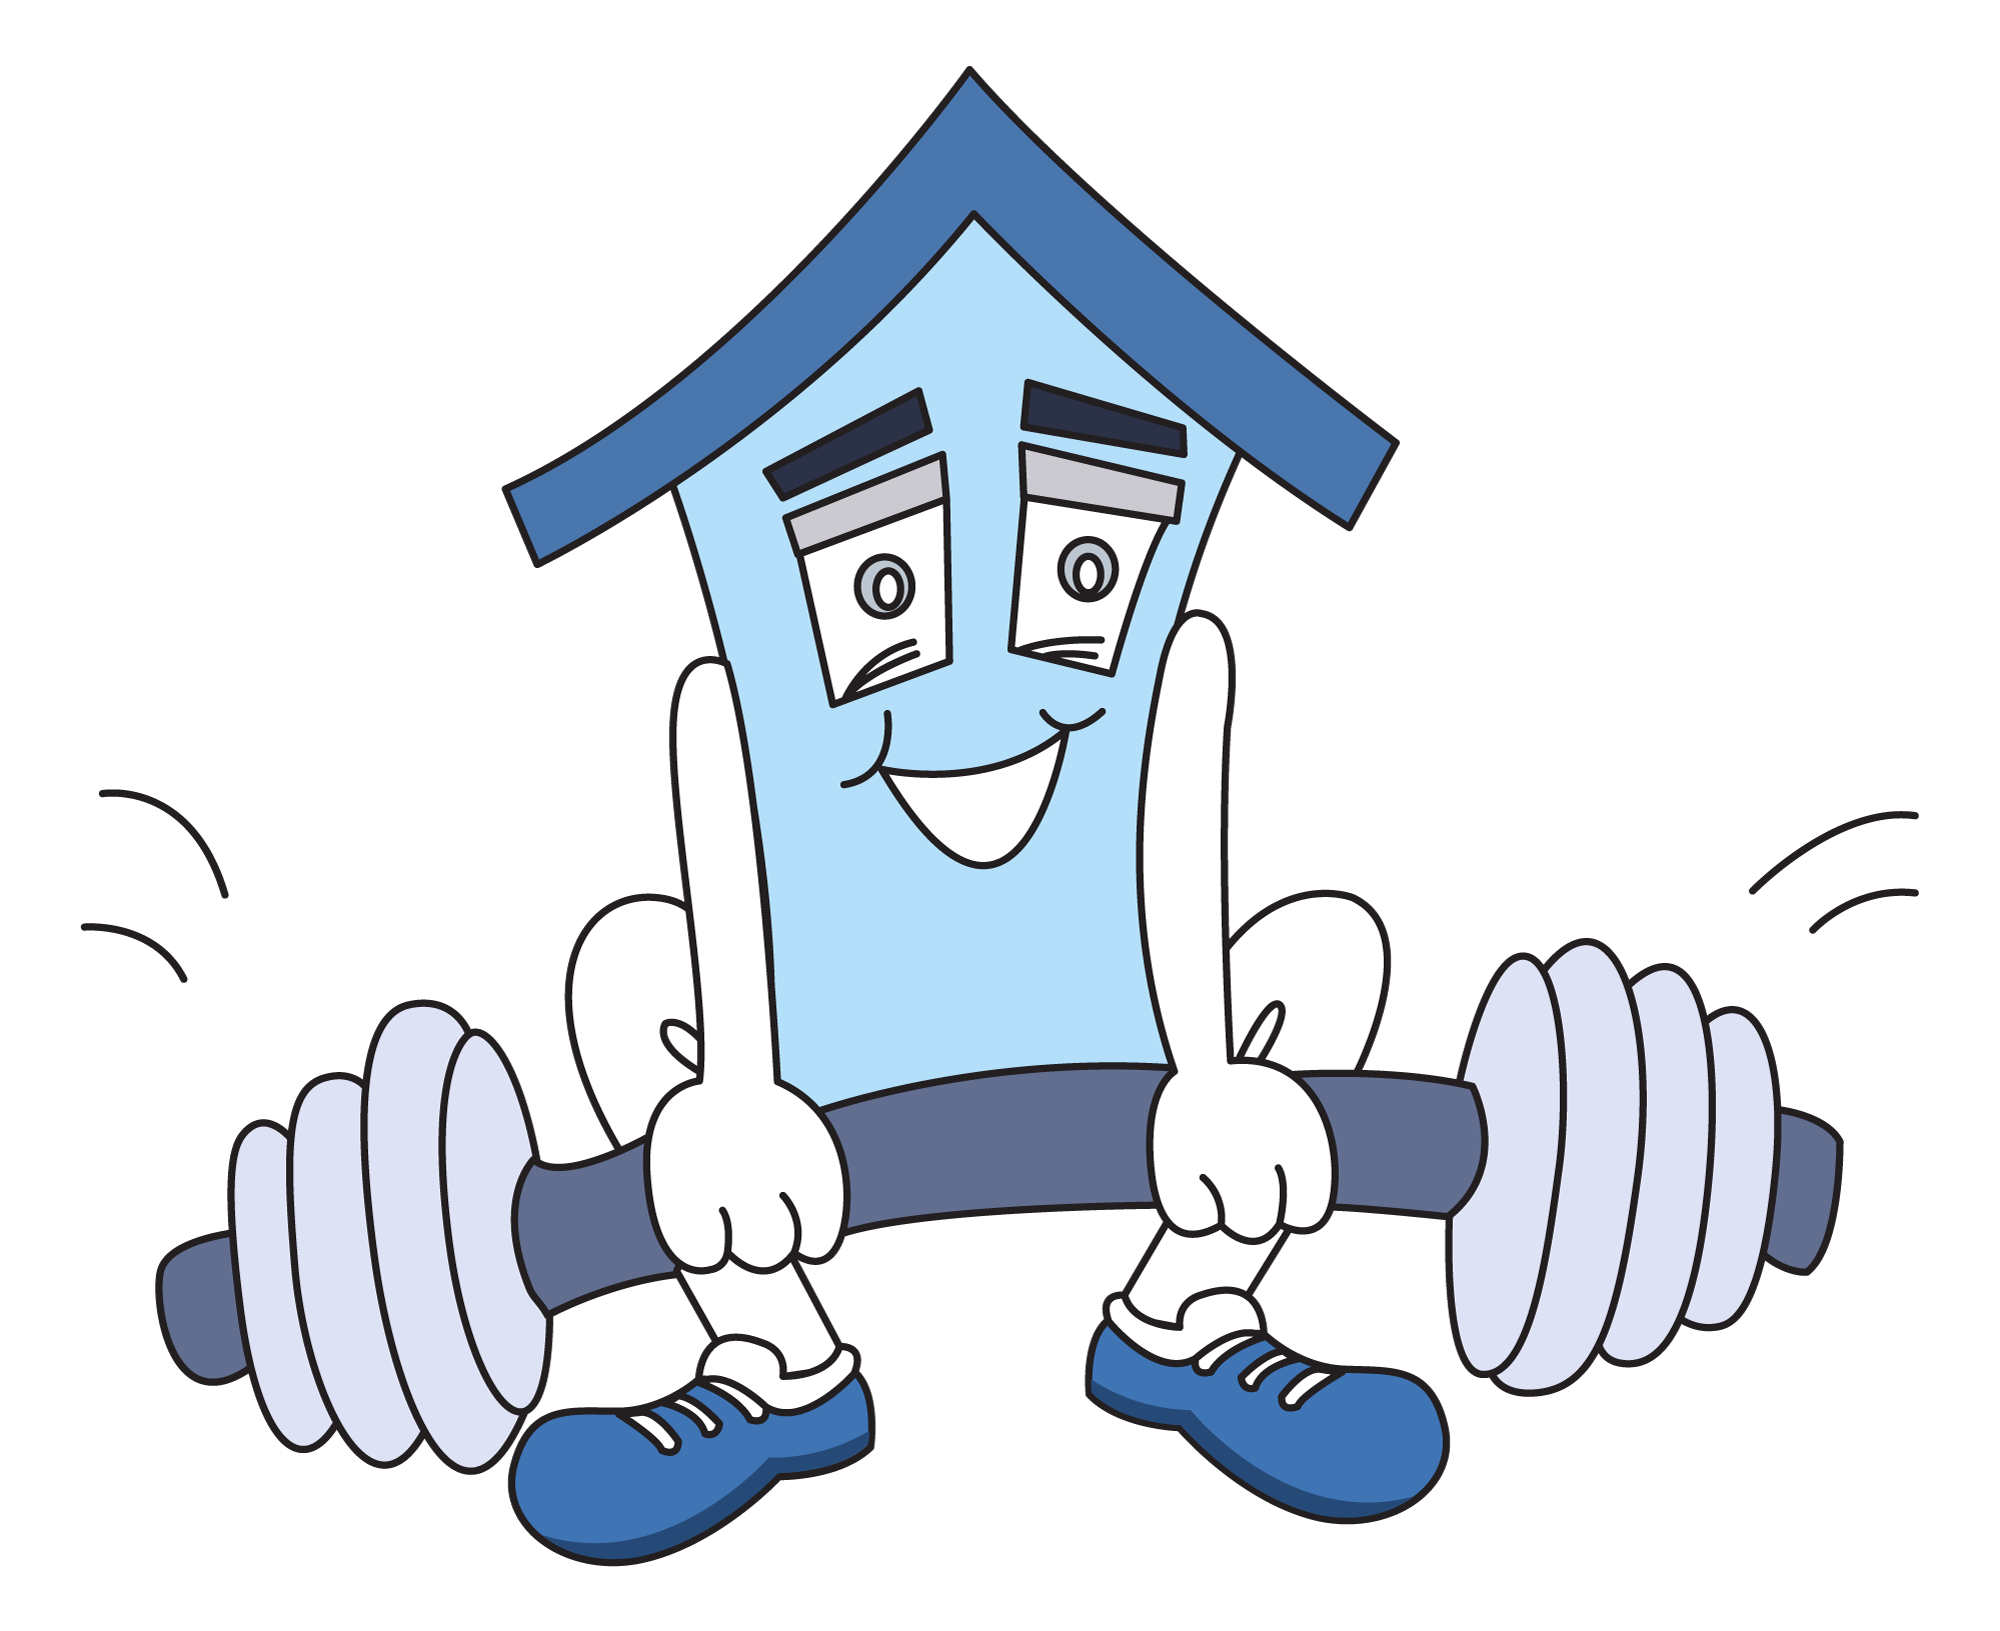 Gym clipart gym instructor. Many thanks to support